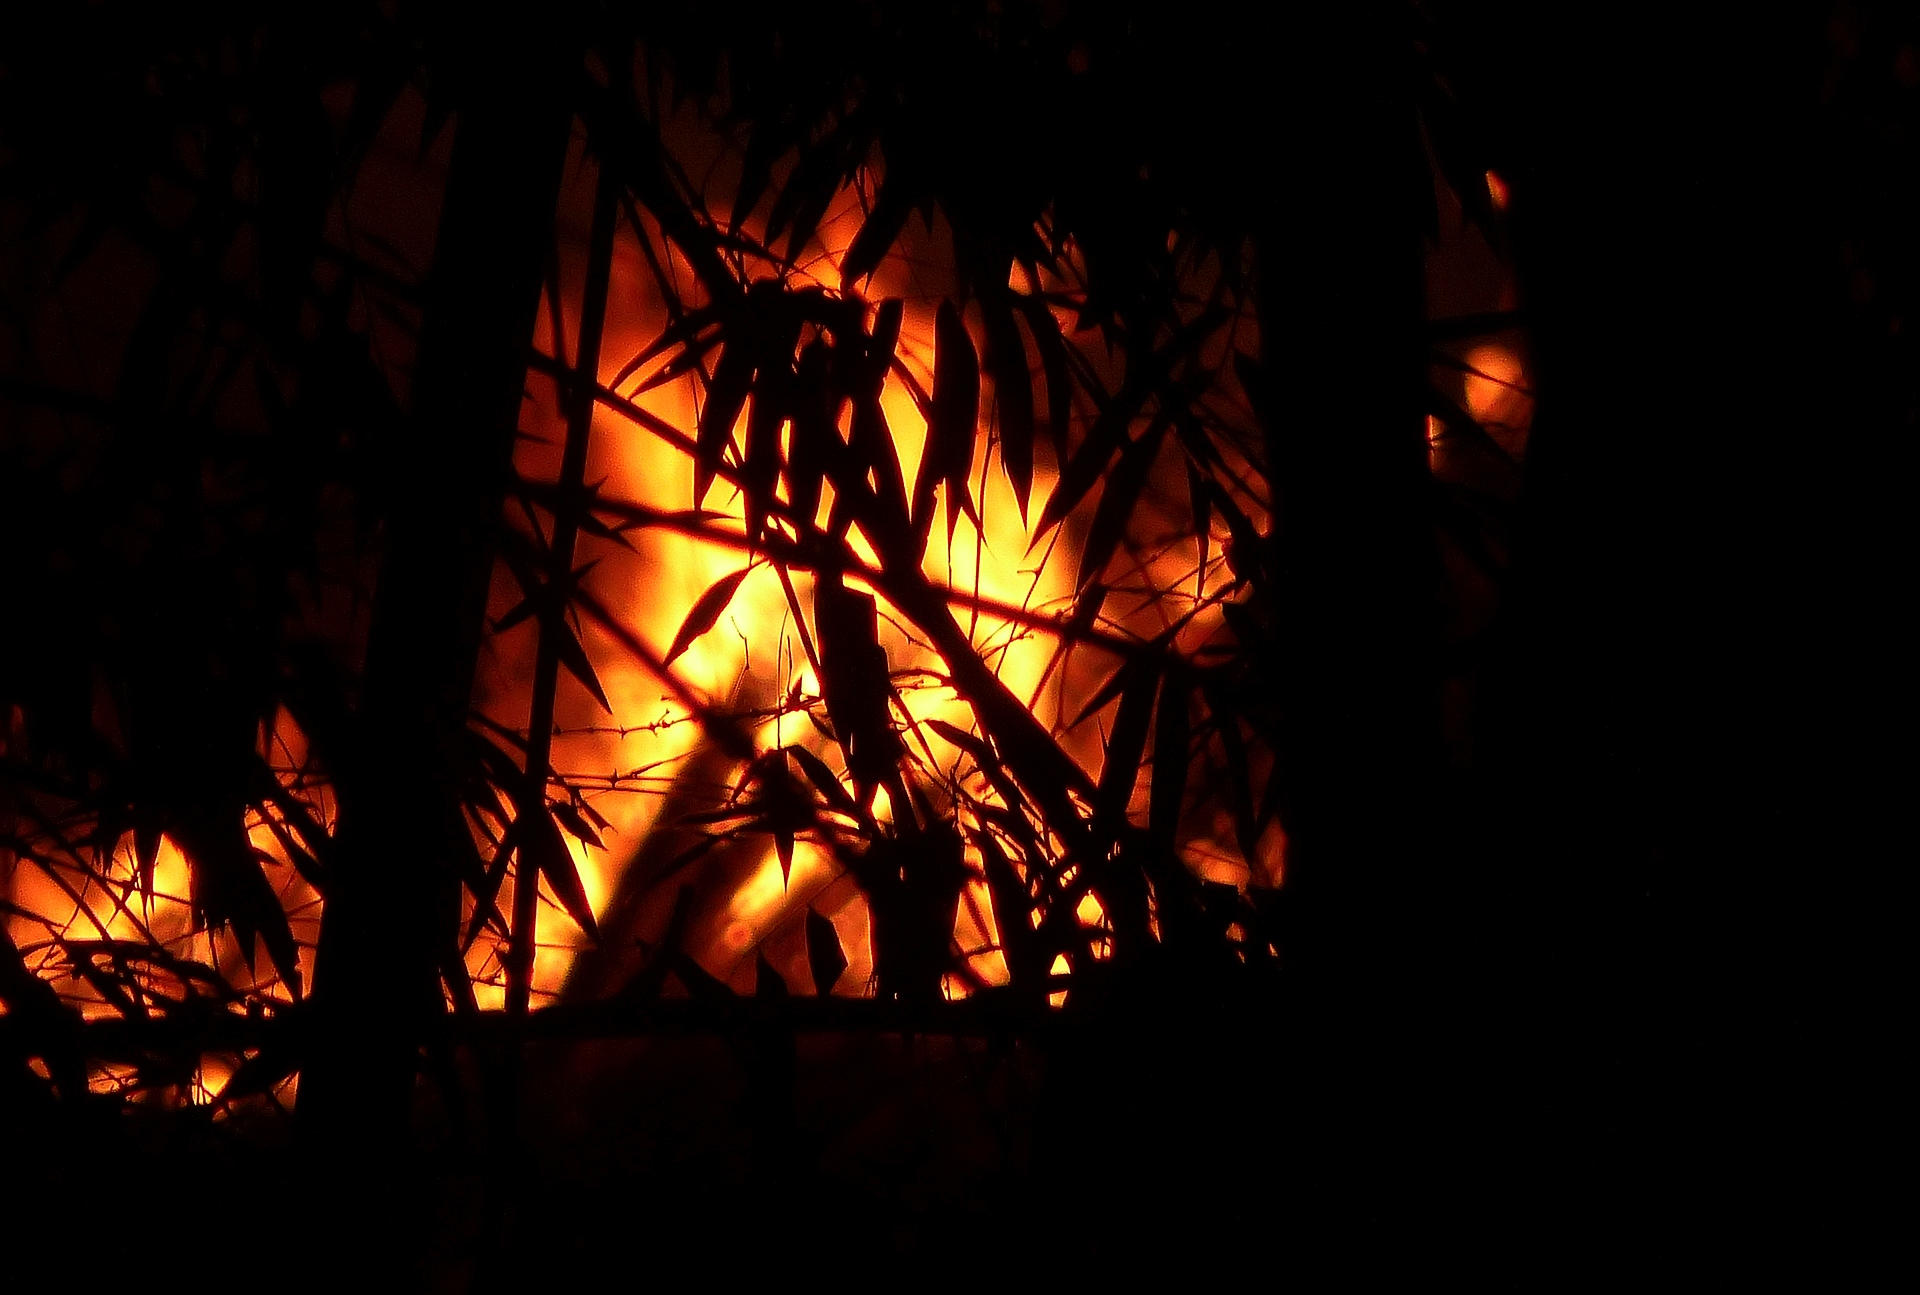 P2030846 the fire july 10 night